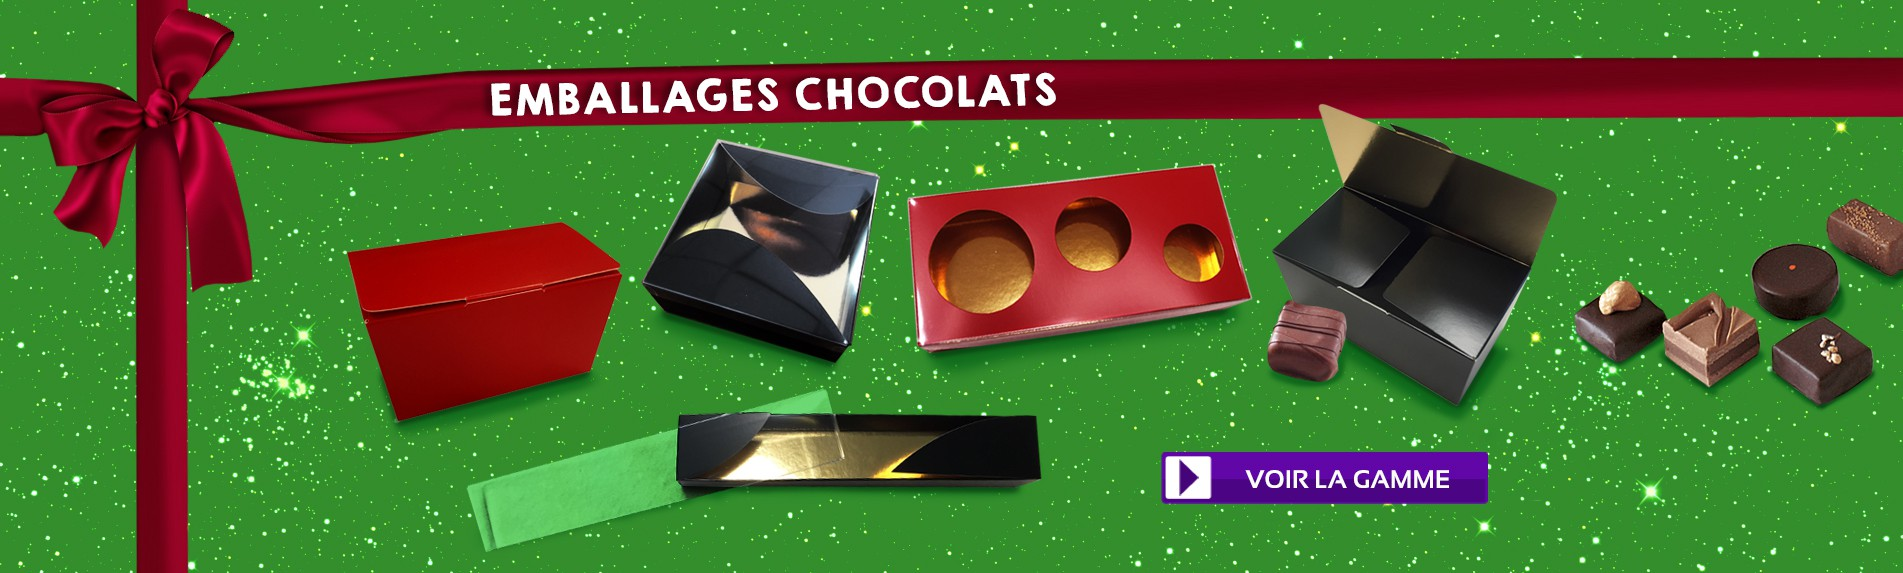 Emballages chocolats